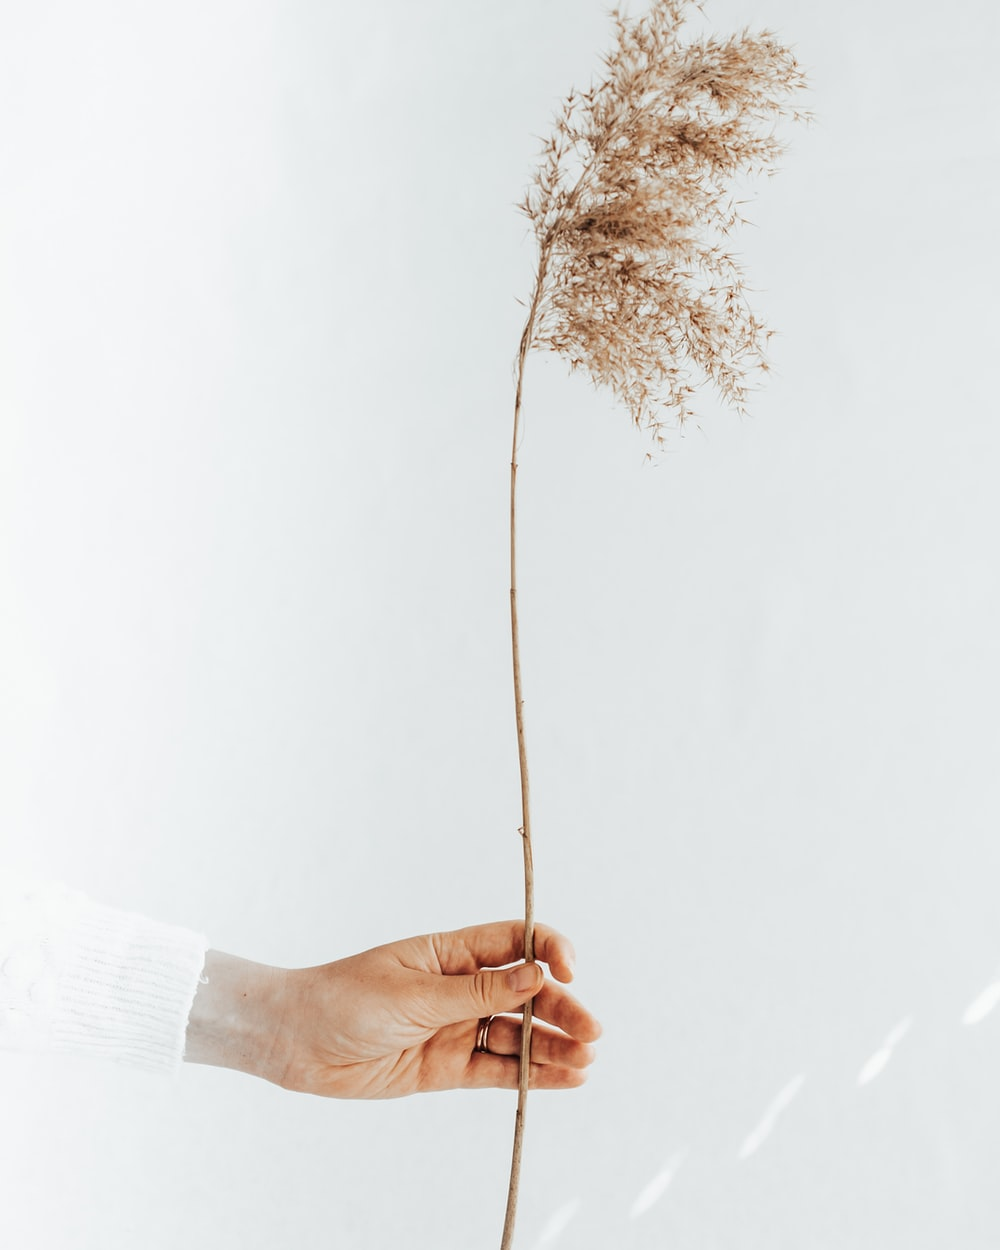 person in white long sleeve shirt holding brown dried leaf